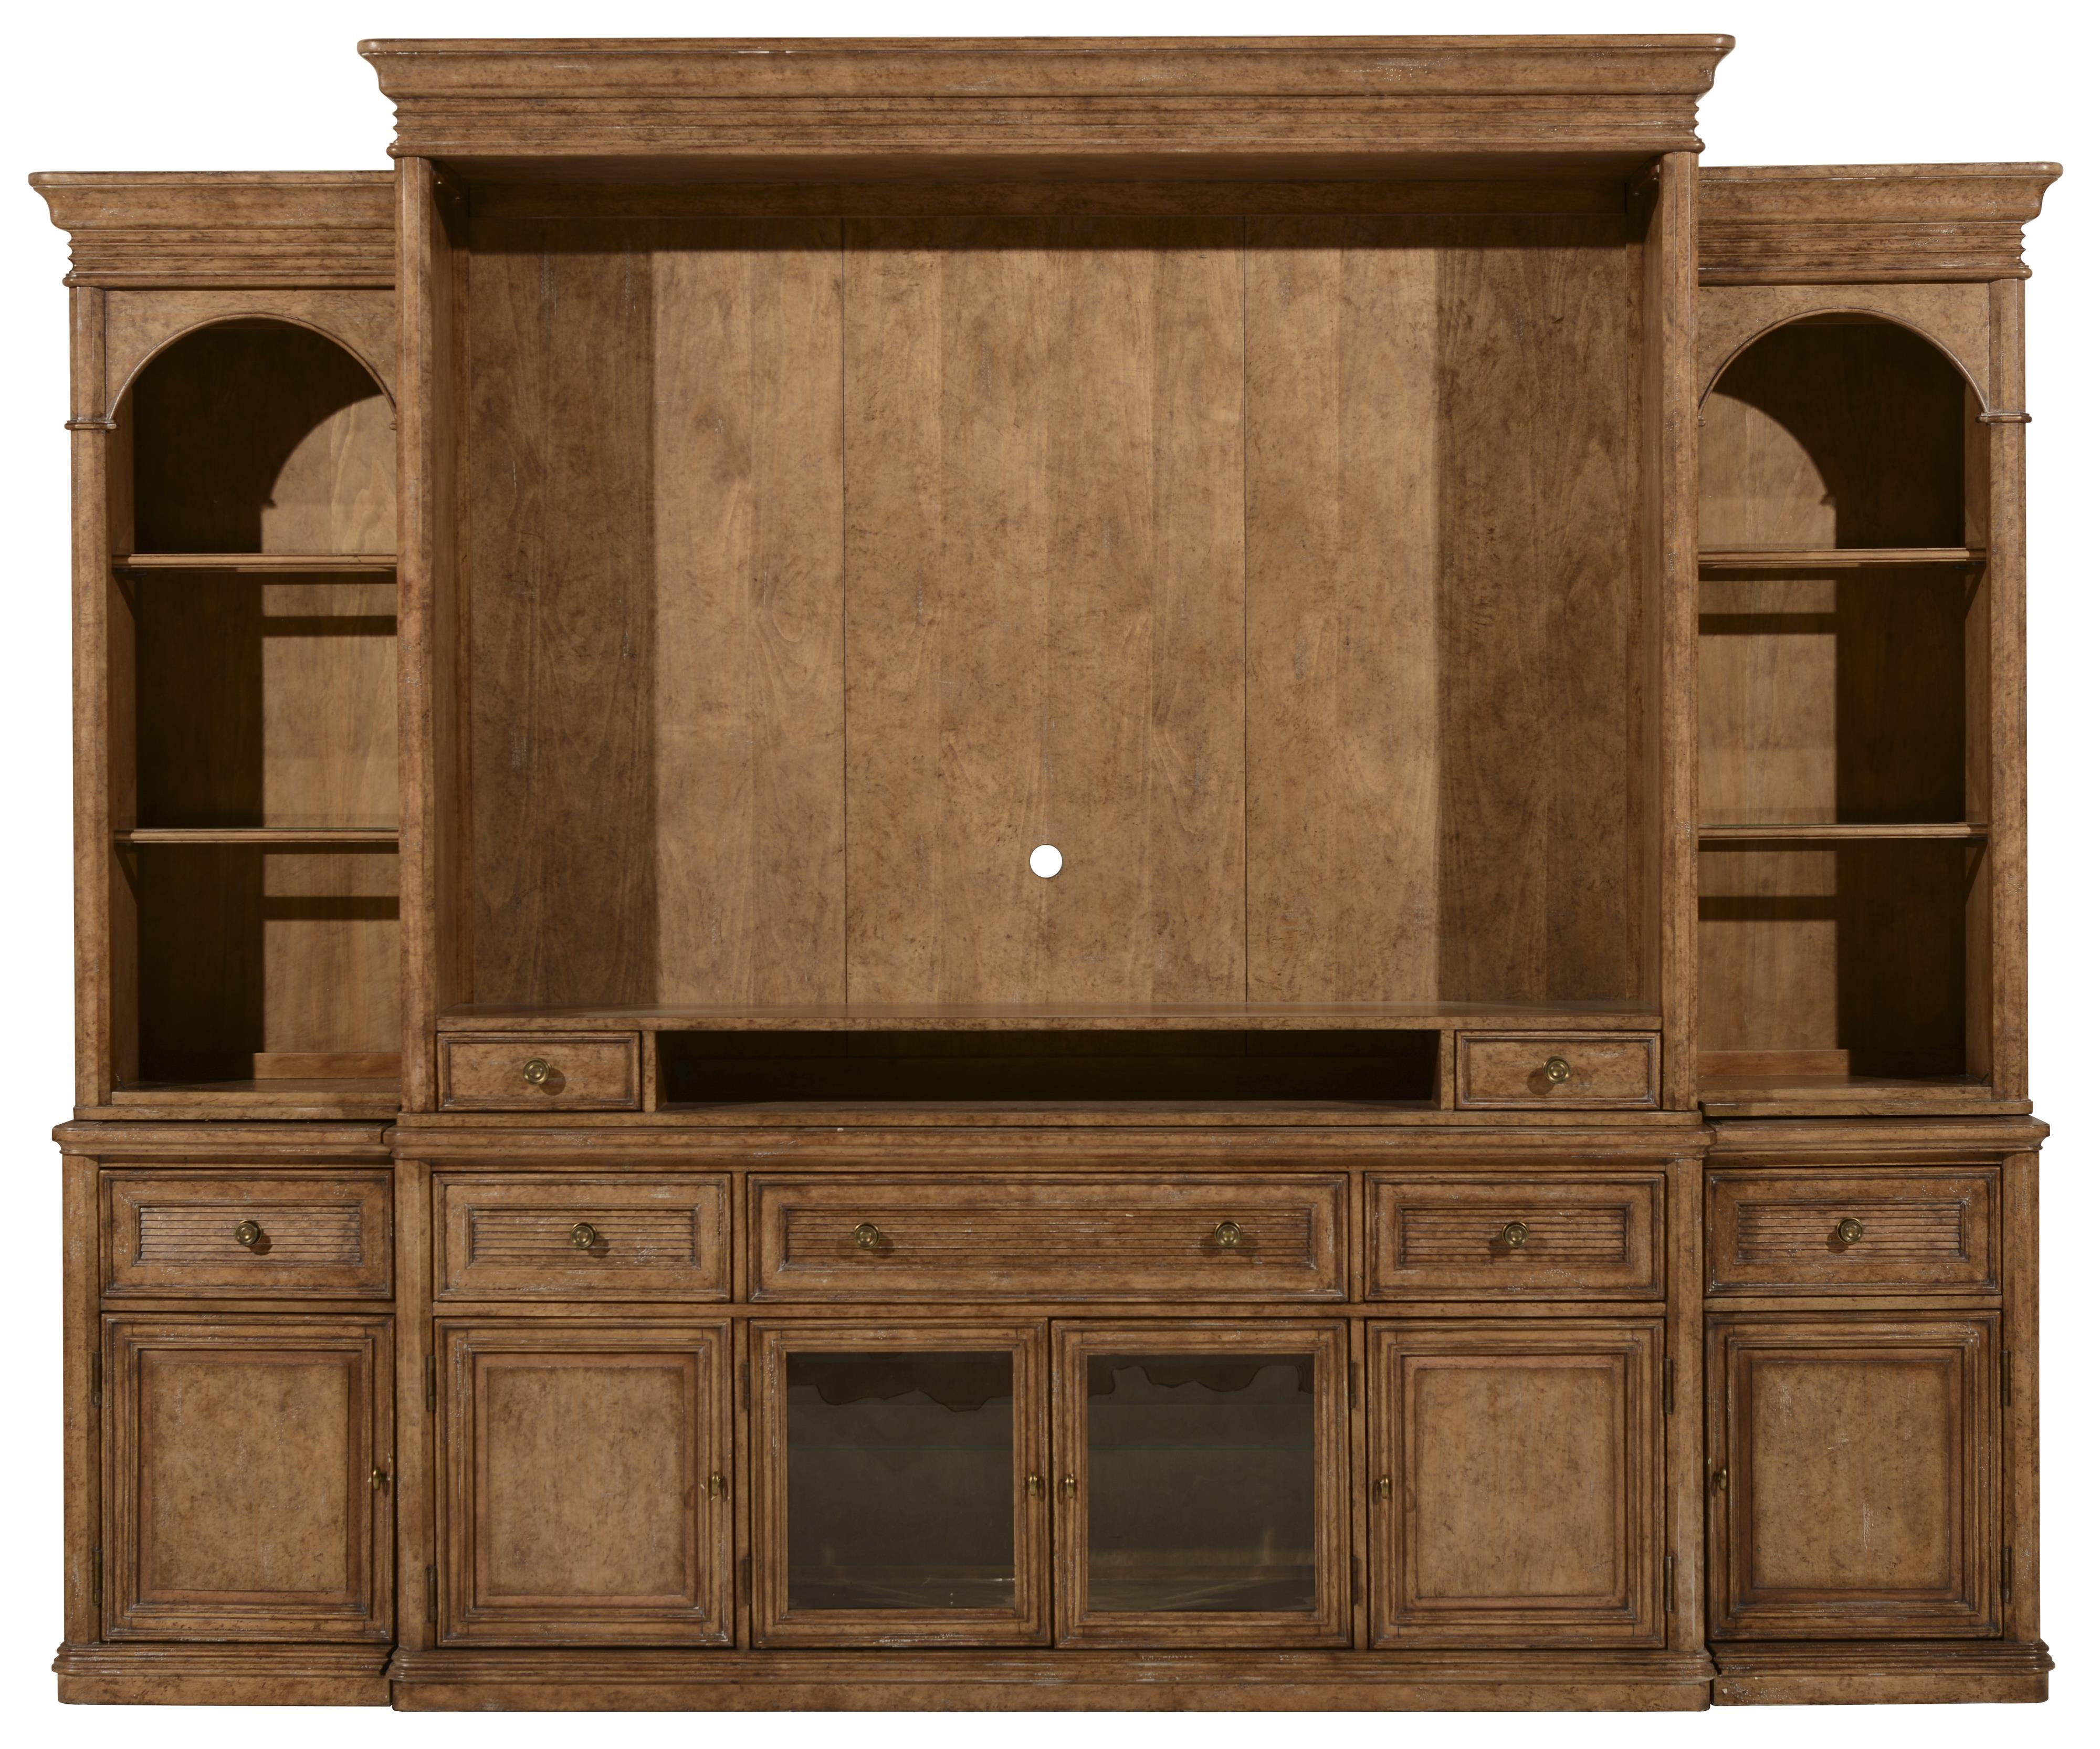 A.R.T. Furniture Inc Pavilion Entertainment Center Complete Wall - Item Number: 229424-2608